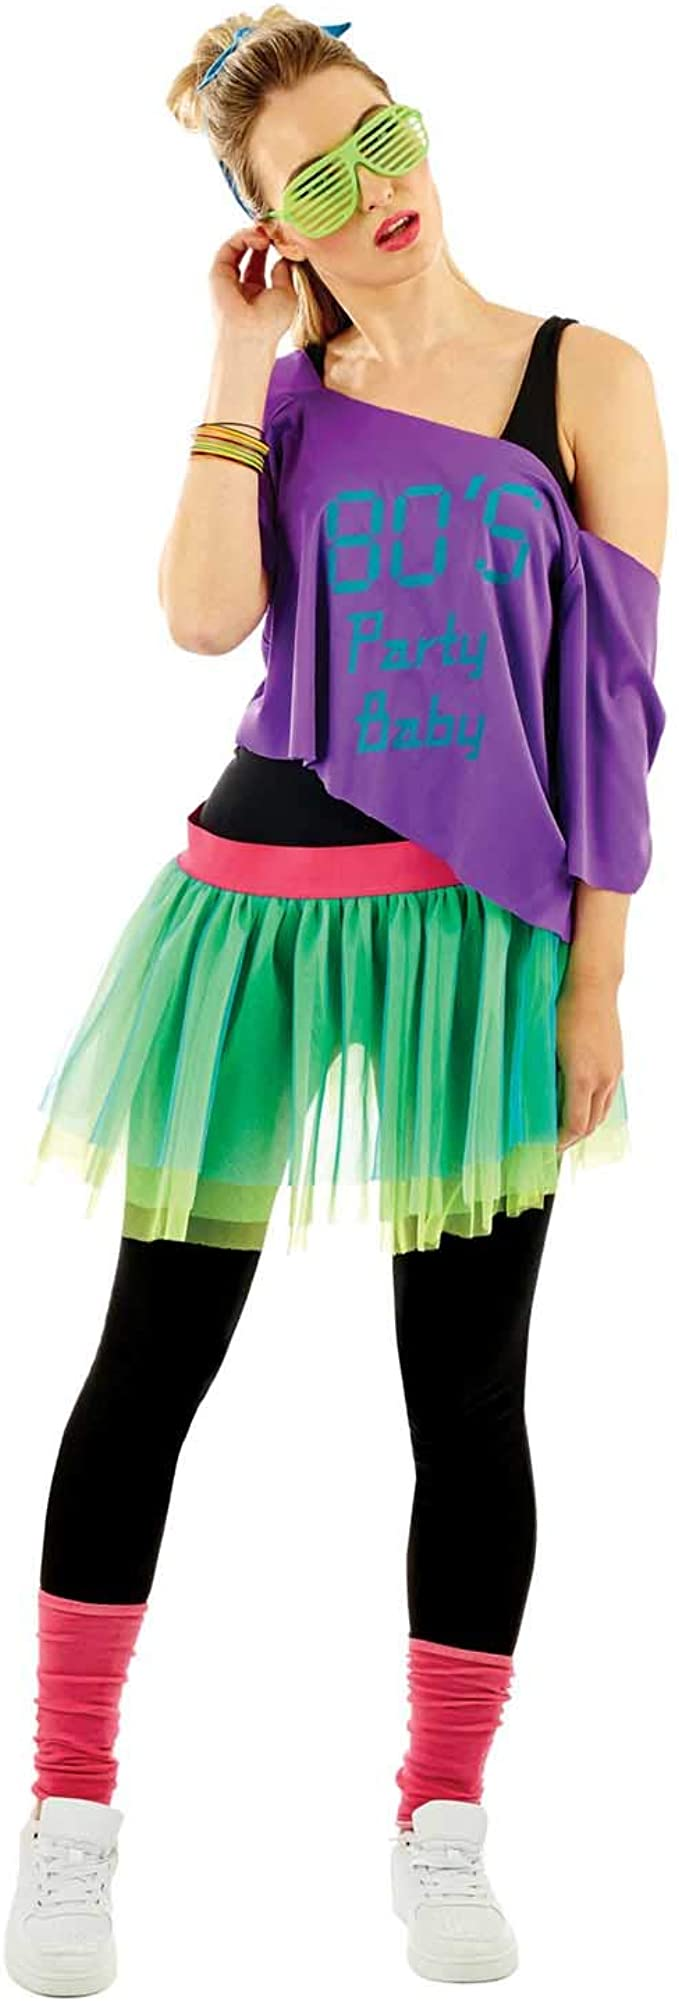 1980s Clothing, Fashion | 80s Style Clothes Womens 80s Purple & Green Neon Costume Adults Decades Party Tutu Outfit - One Size  AT vintagedancer.com